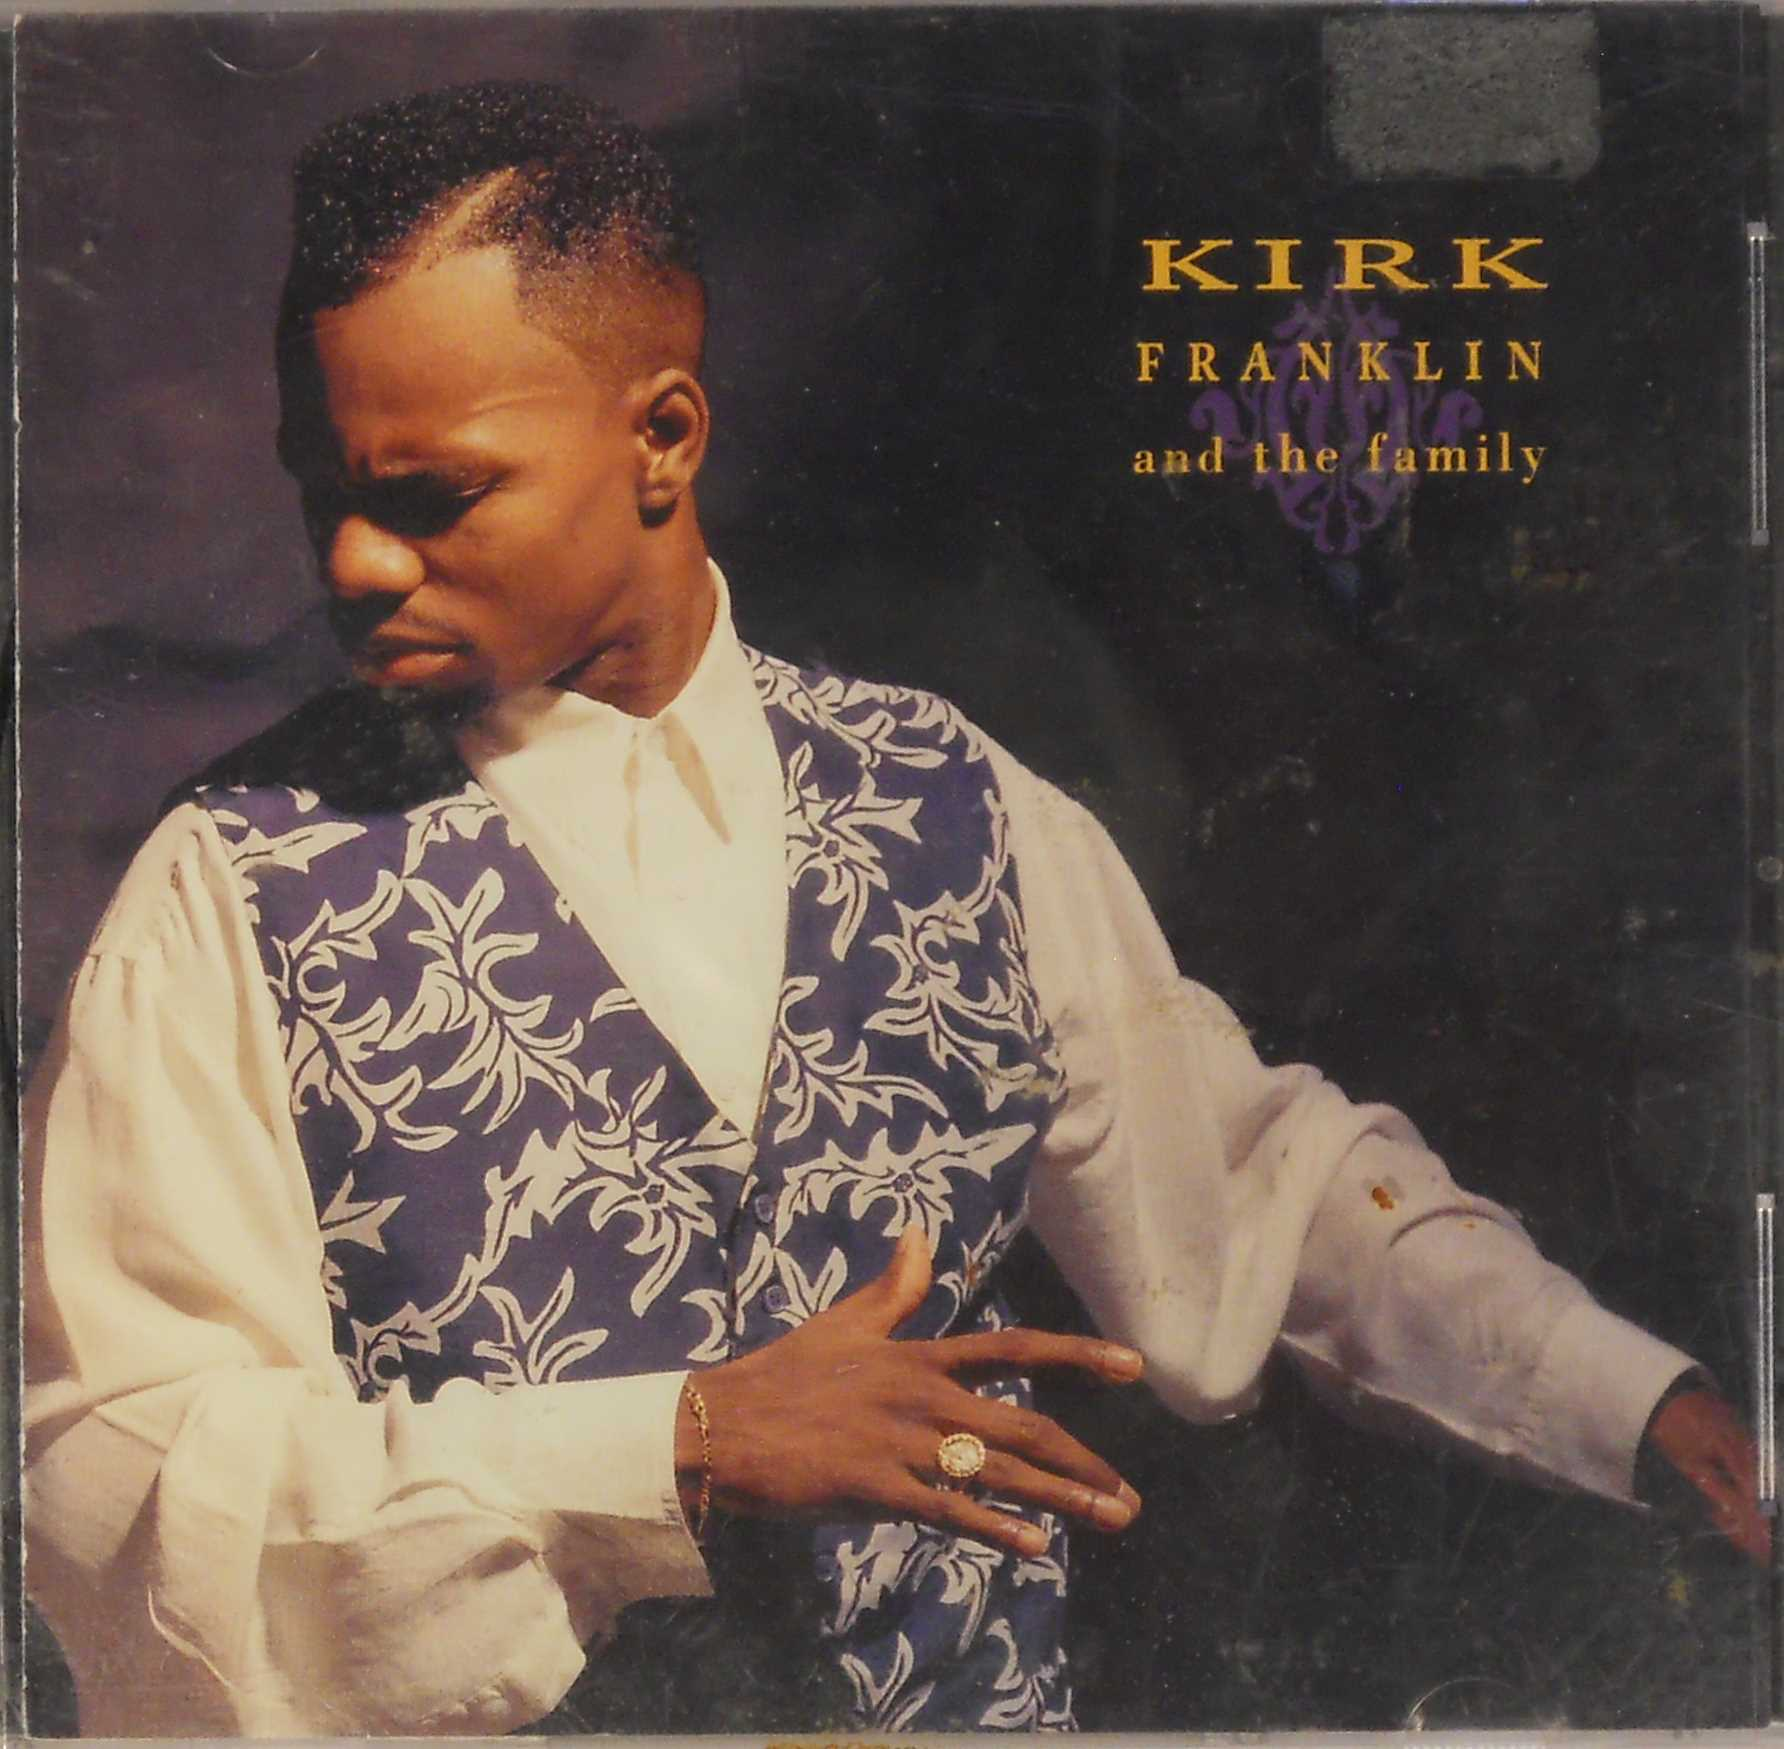 Kirk Franklin Records, LPs, Vinyl and CDs - MusicStack